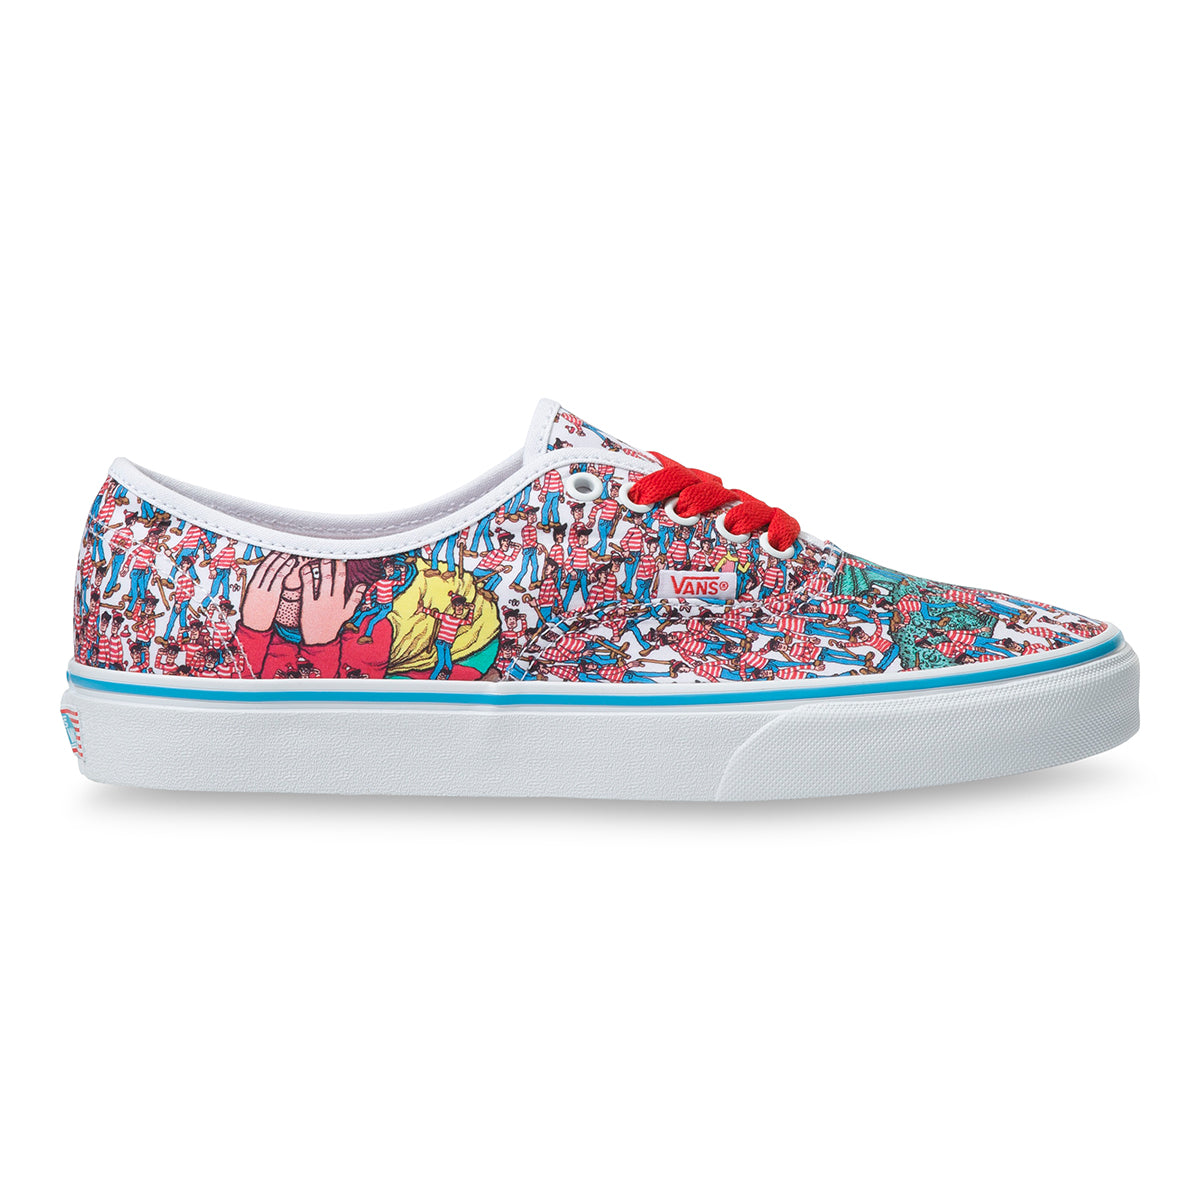 Vans X Where's Waldo? Authentic